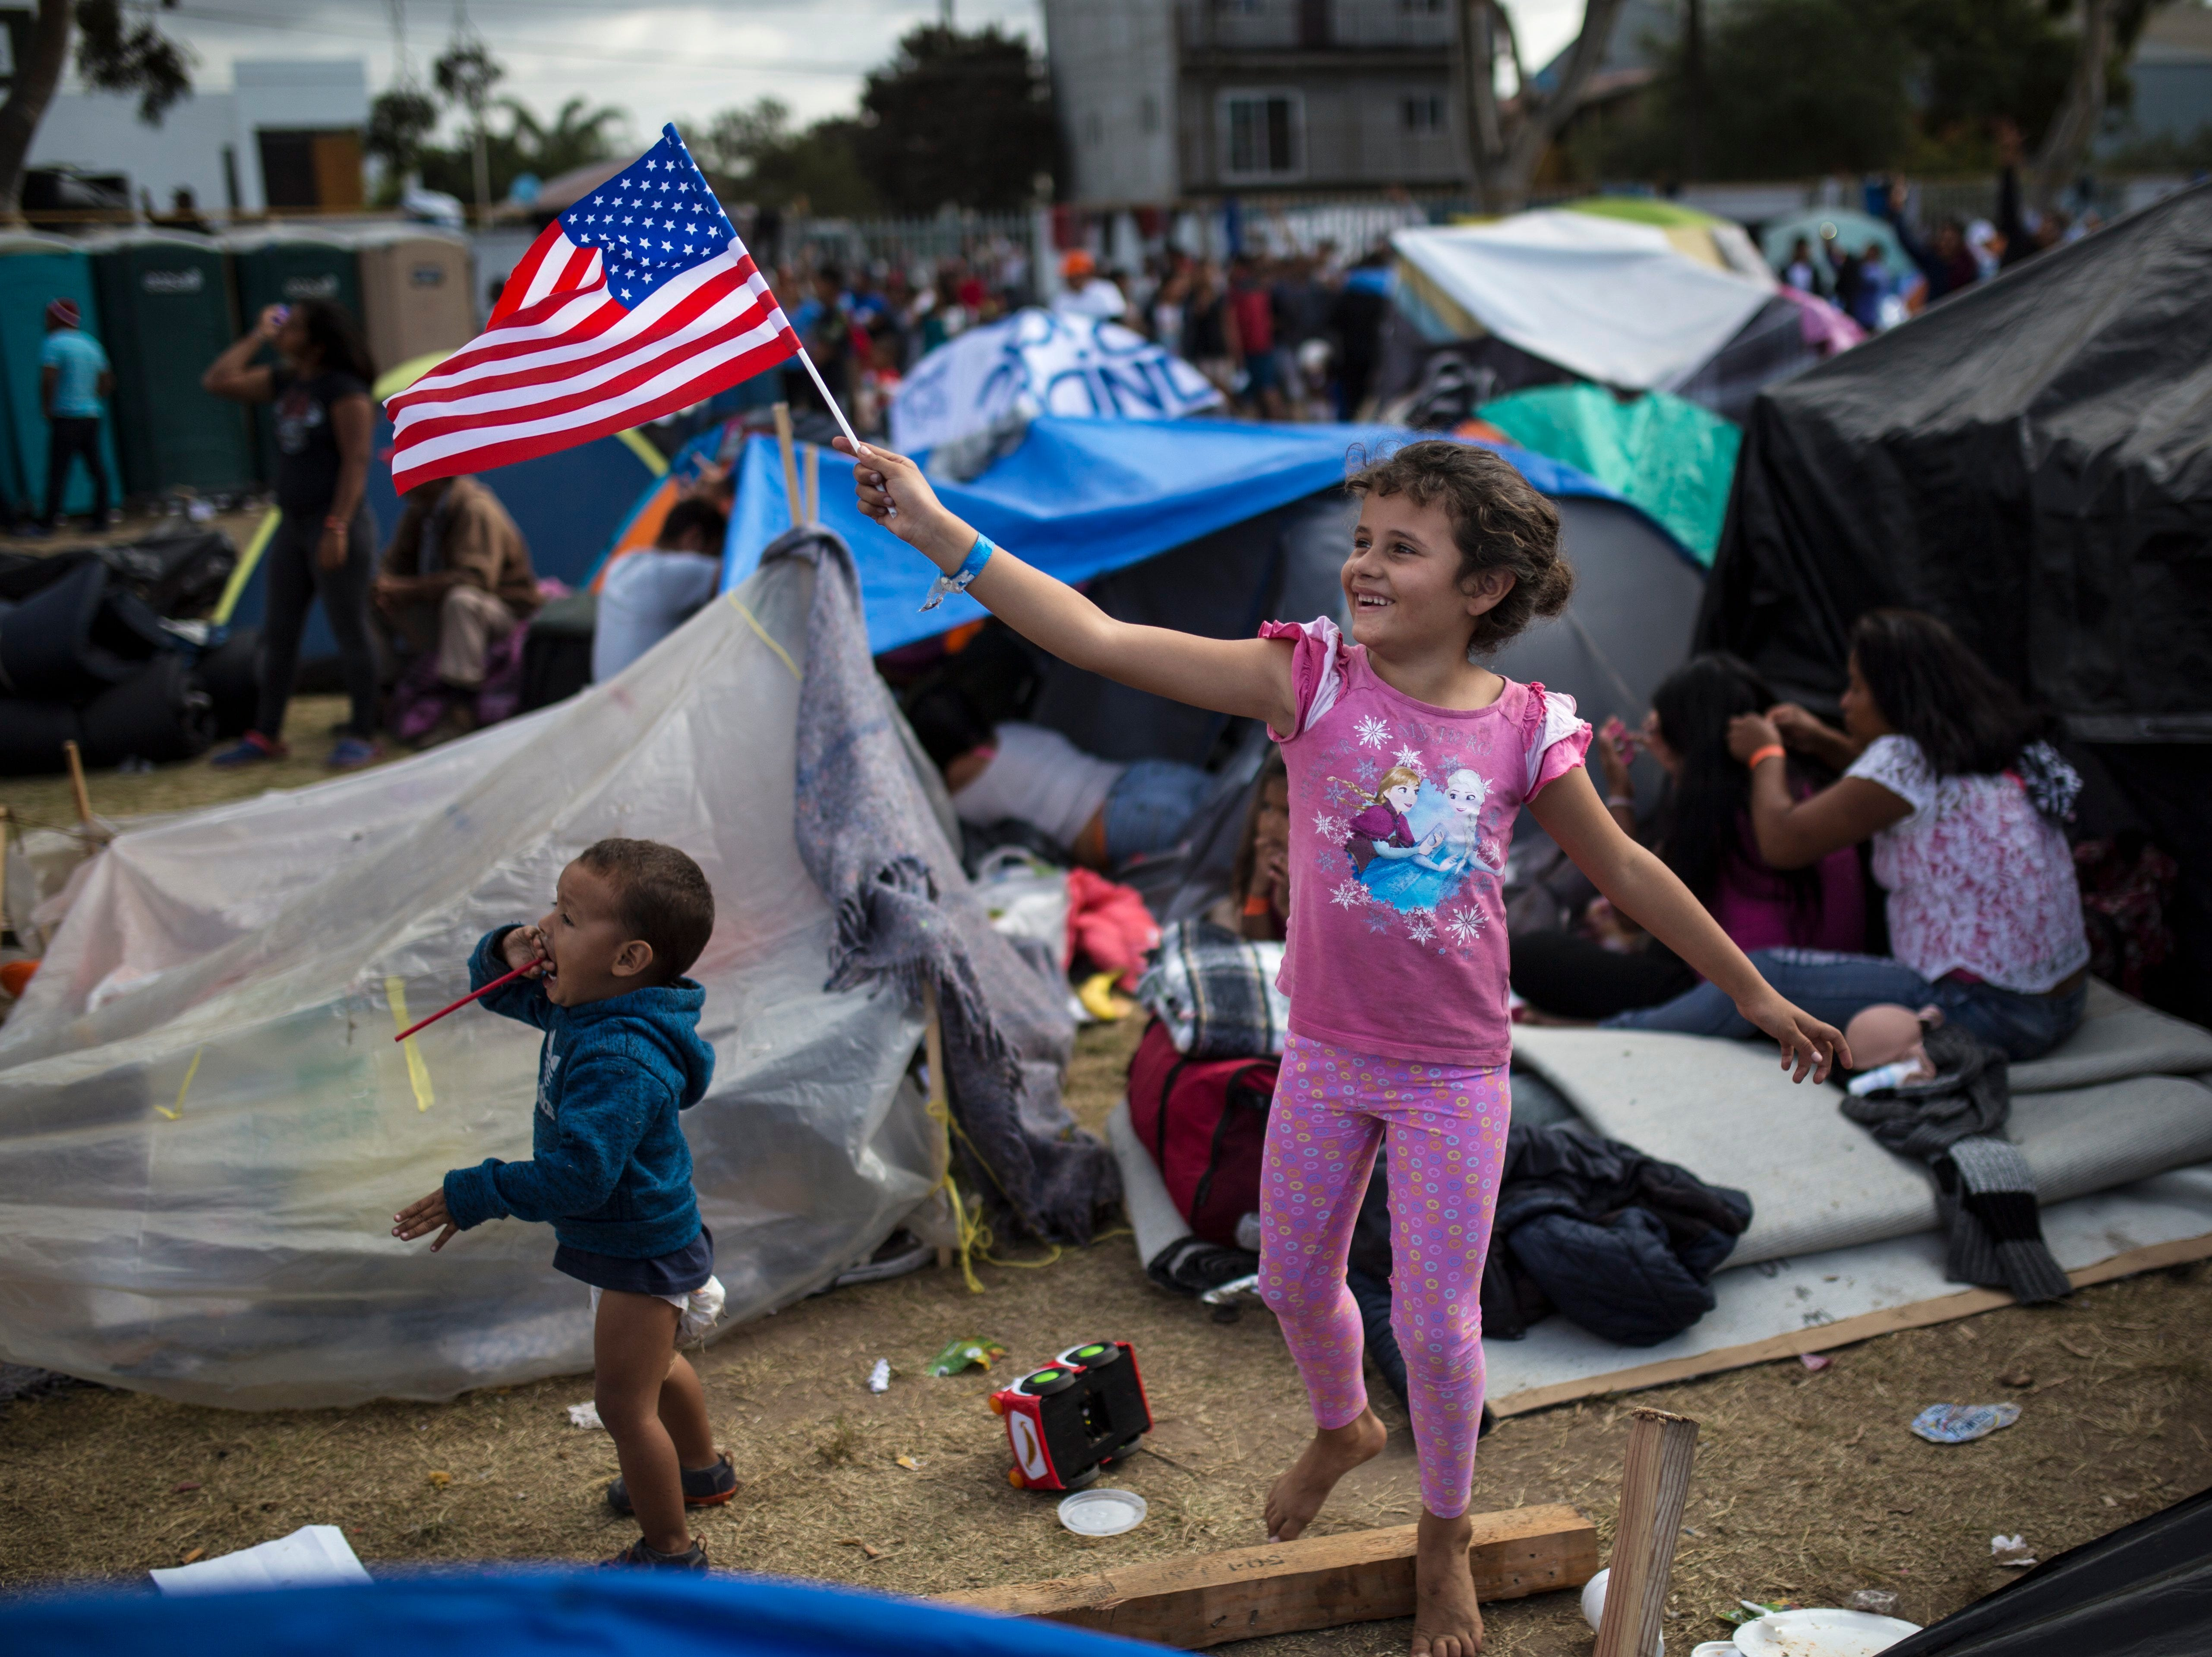 Seven-year-old Honduran migrant Genesis Belen Mejia Flores waves an American flag at U.S. border control helicopters flying overhead near the Benito Juarez Sports Center, which is serving as a temporary shelter for migrants, in Tijuana, Mexico, Saturday, Nov. 24, 2018.